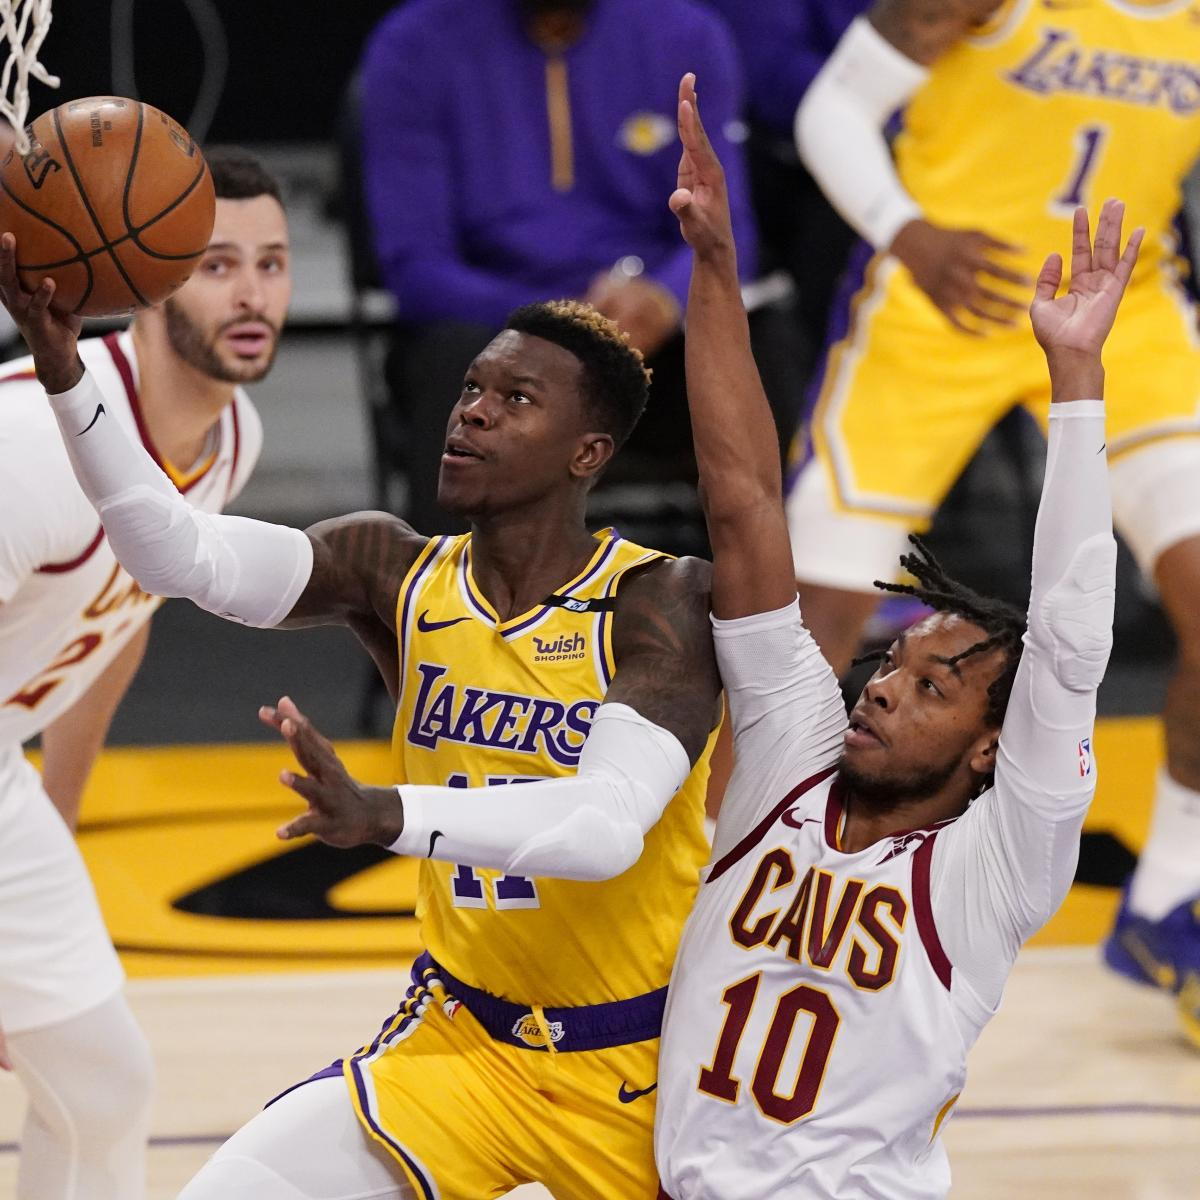 Dennis Schroder, Lakers Pull Away from Cavs to Snap 4-Game Losing Streak thumbnail